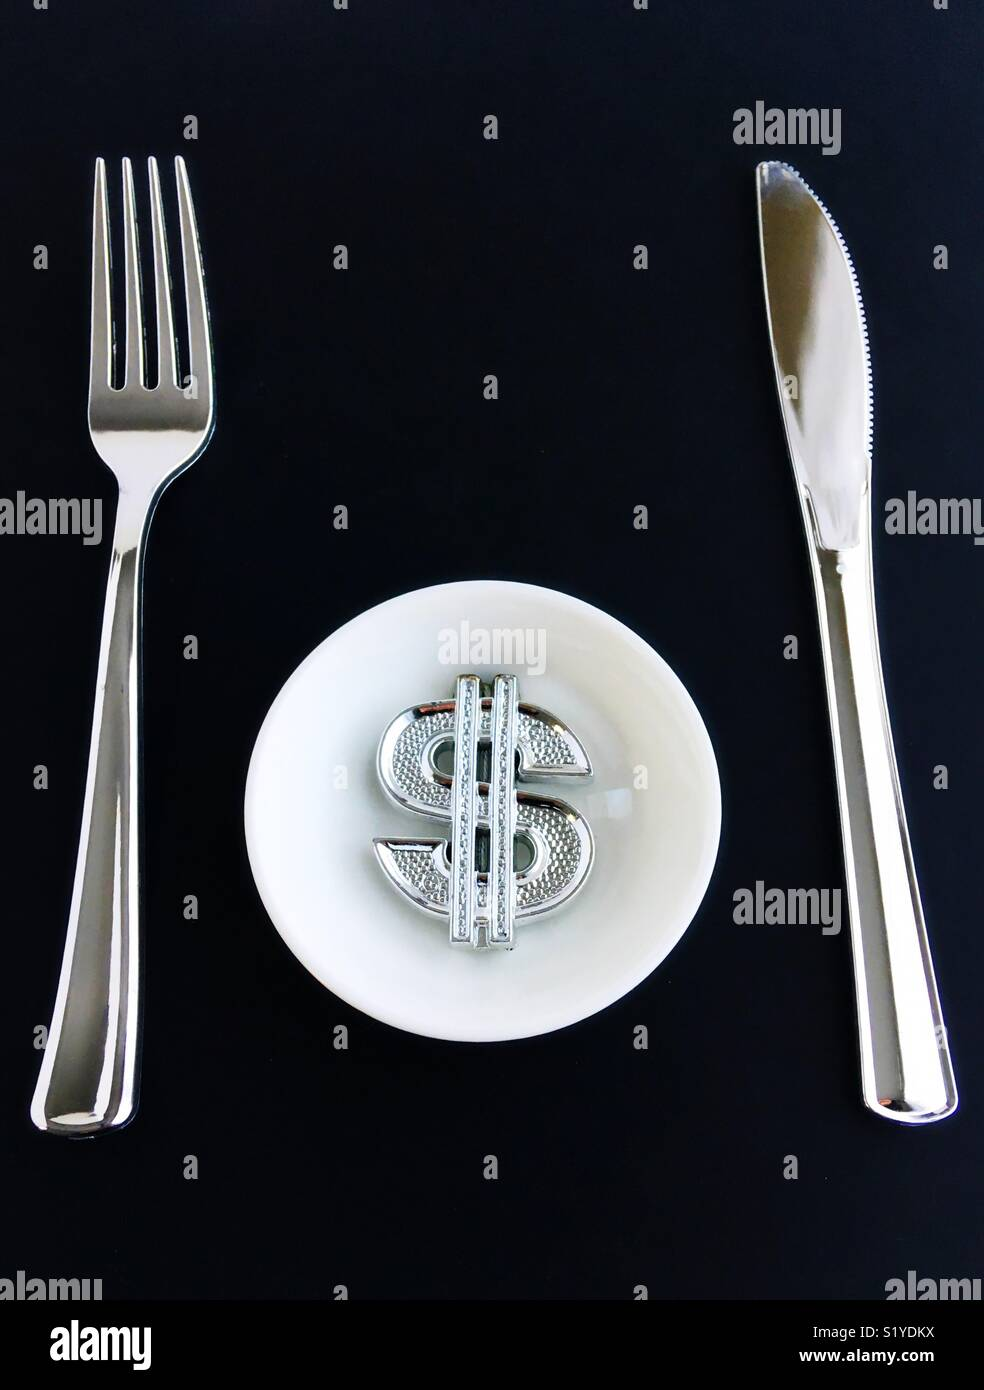 Conceptual: money hungry. - Stock Image